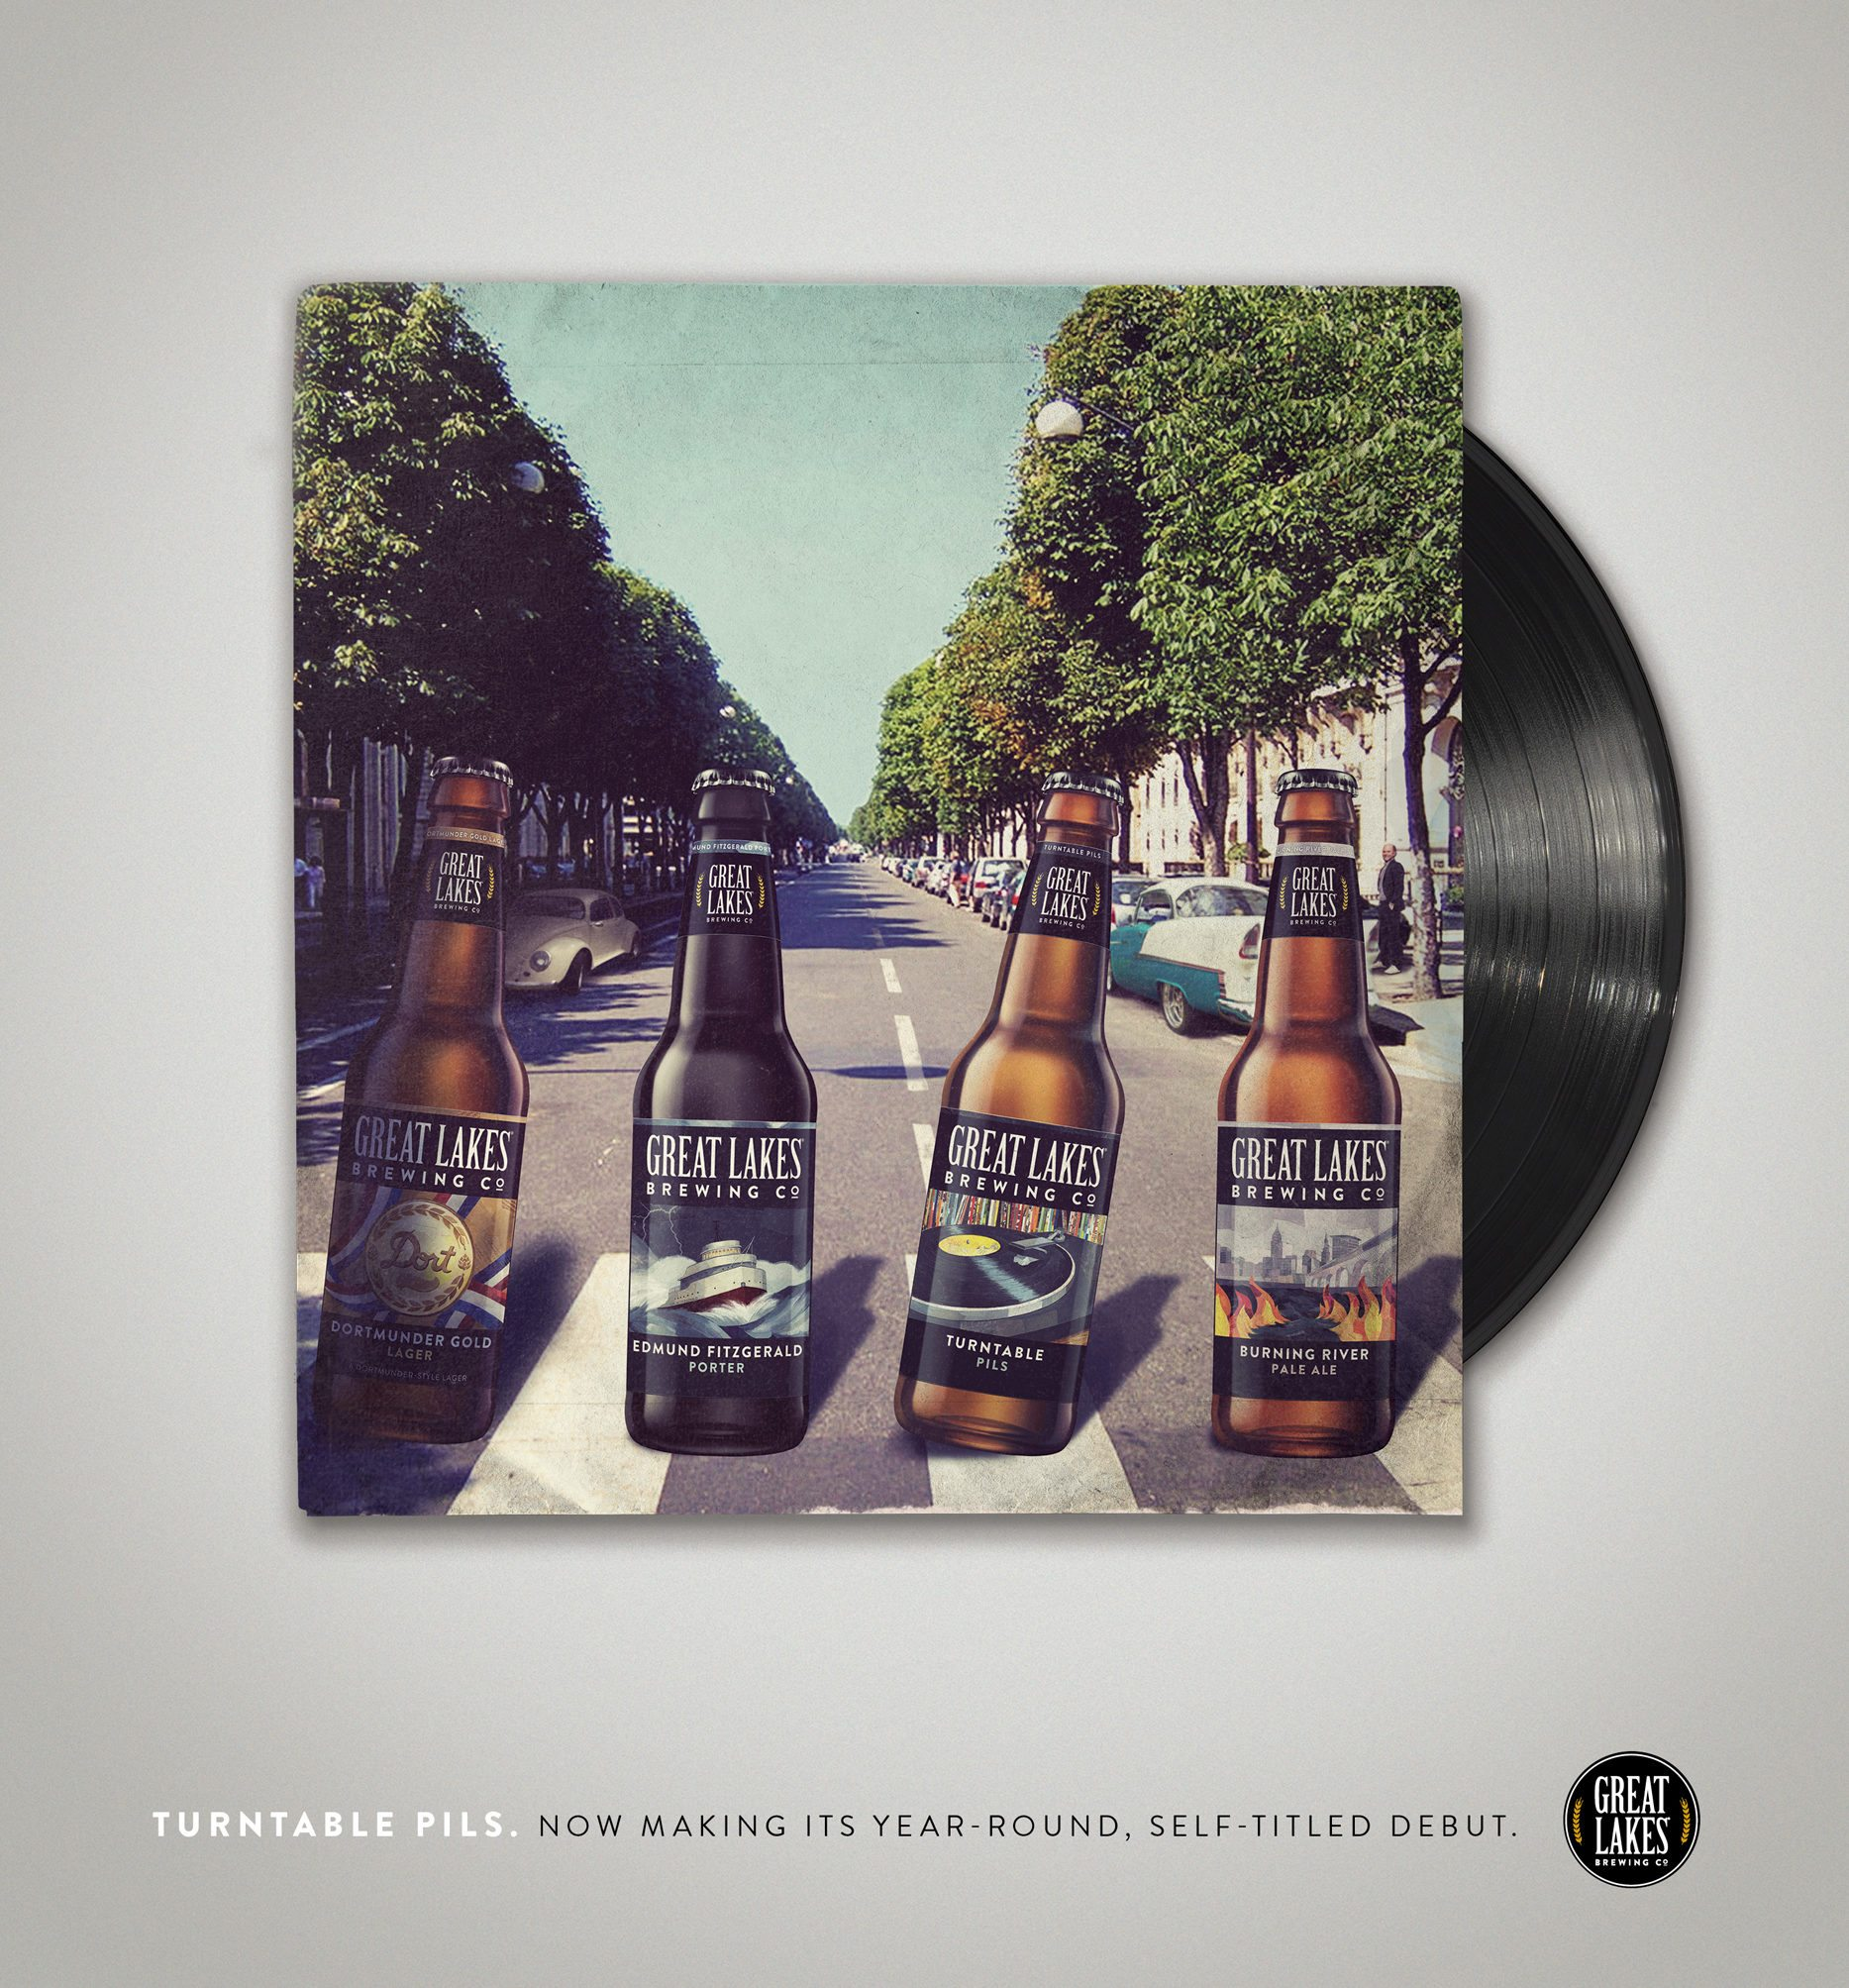 Turntable-Posters-Square-abbeyroad-e1502721751267.jpg